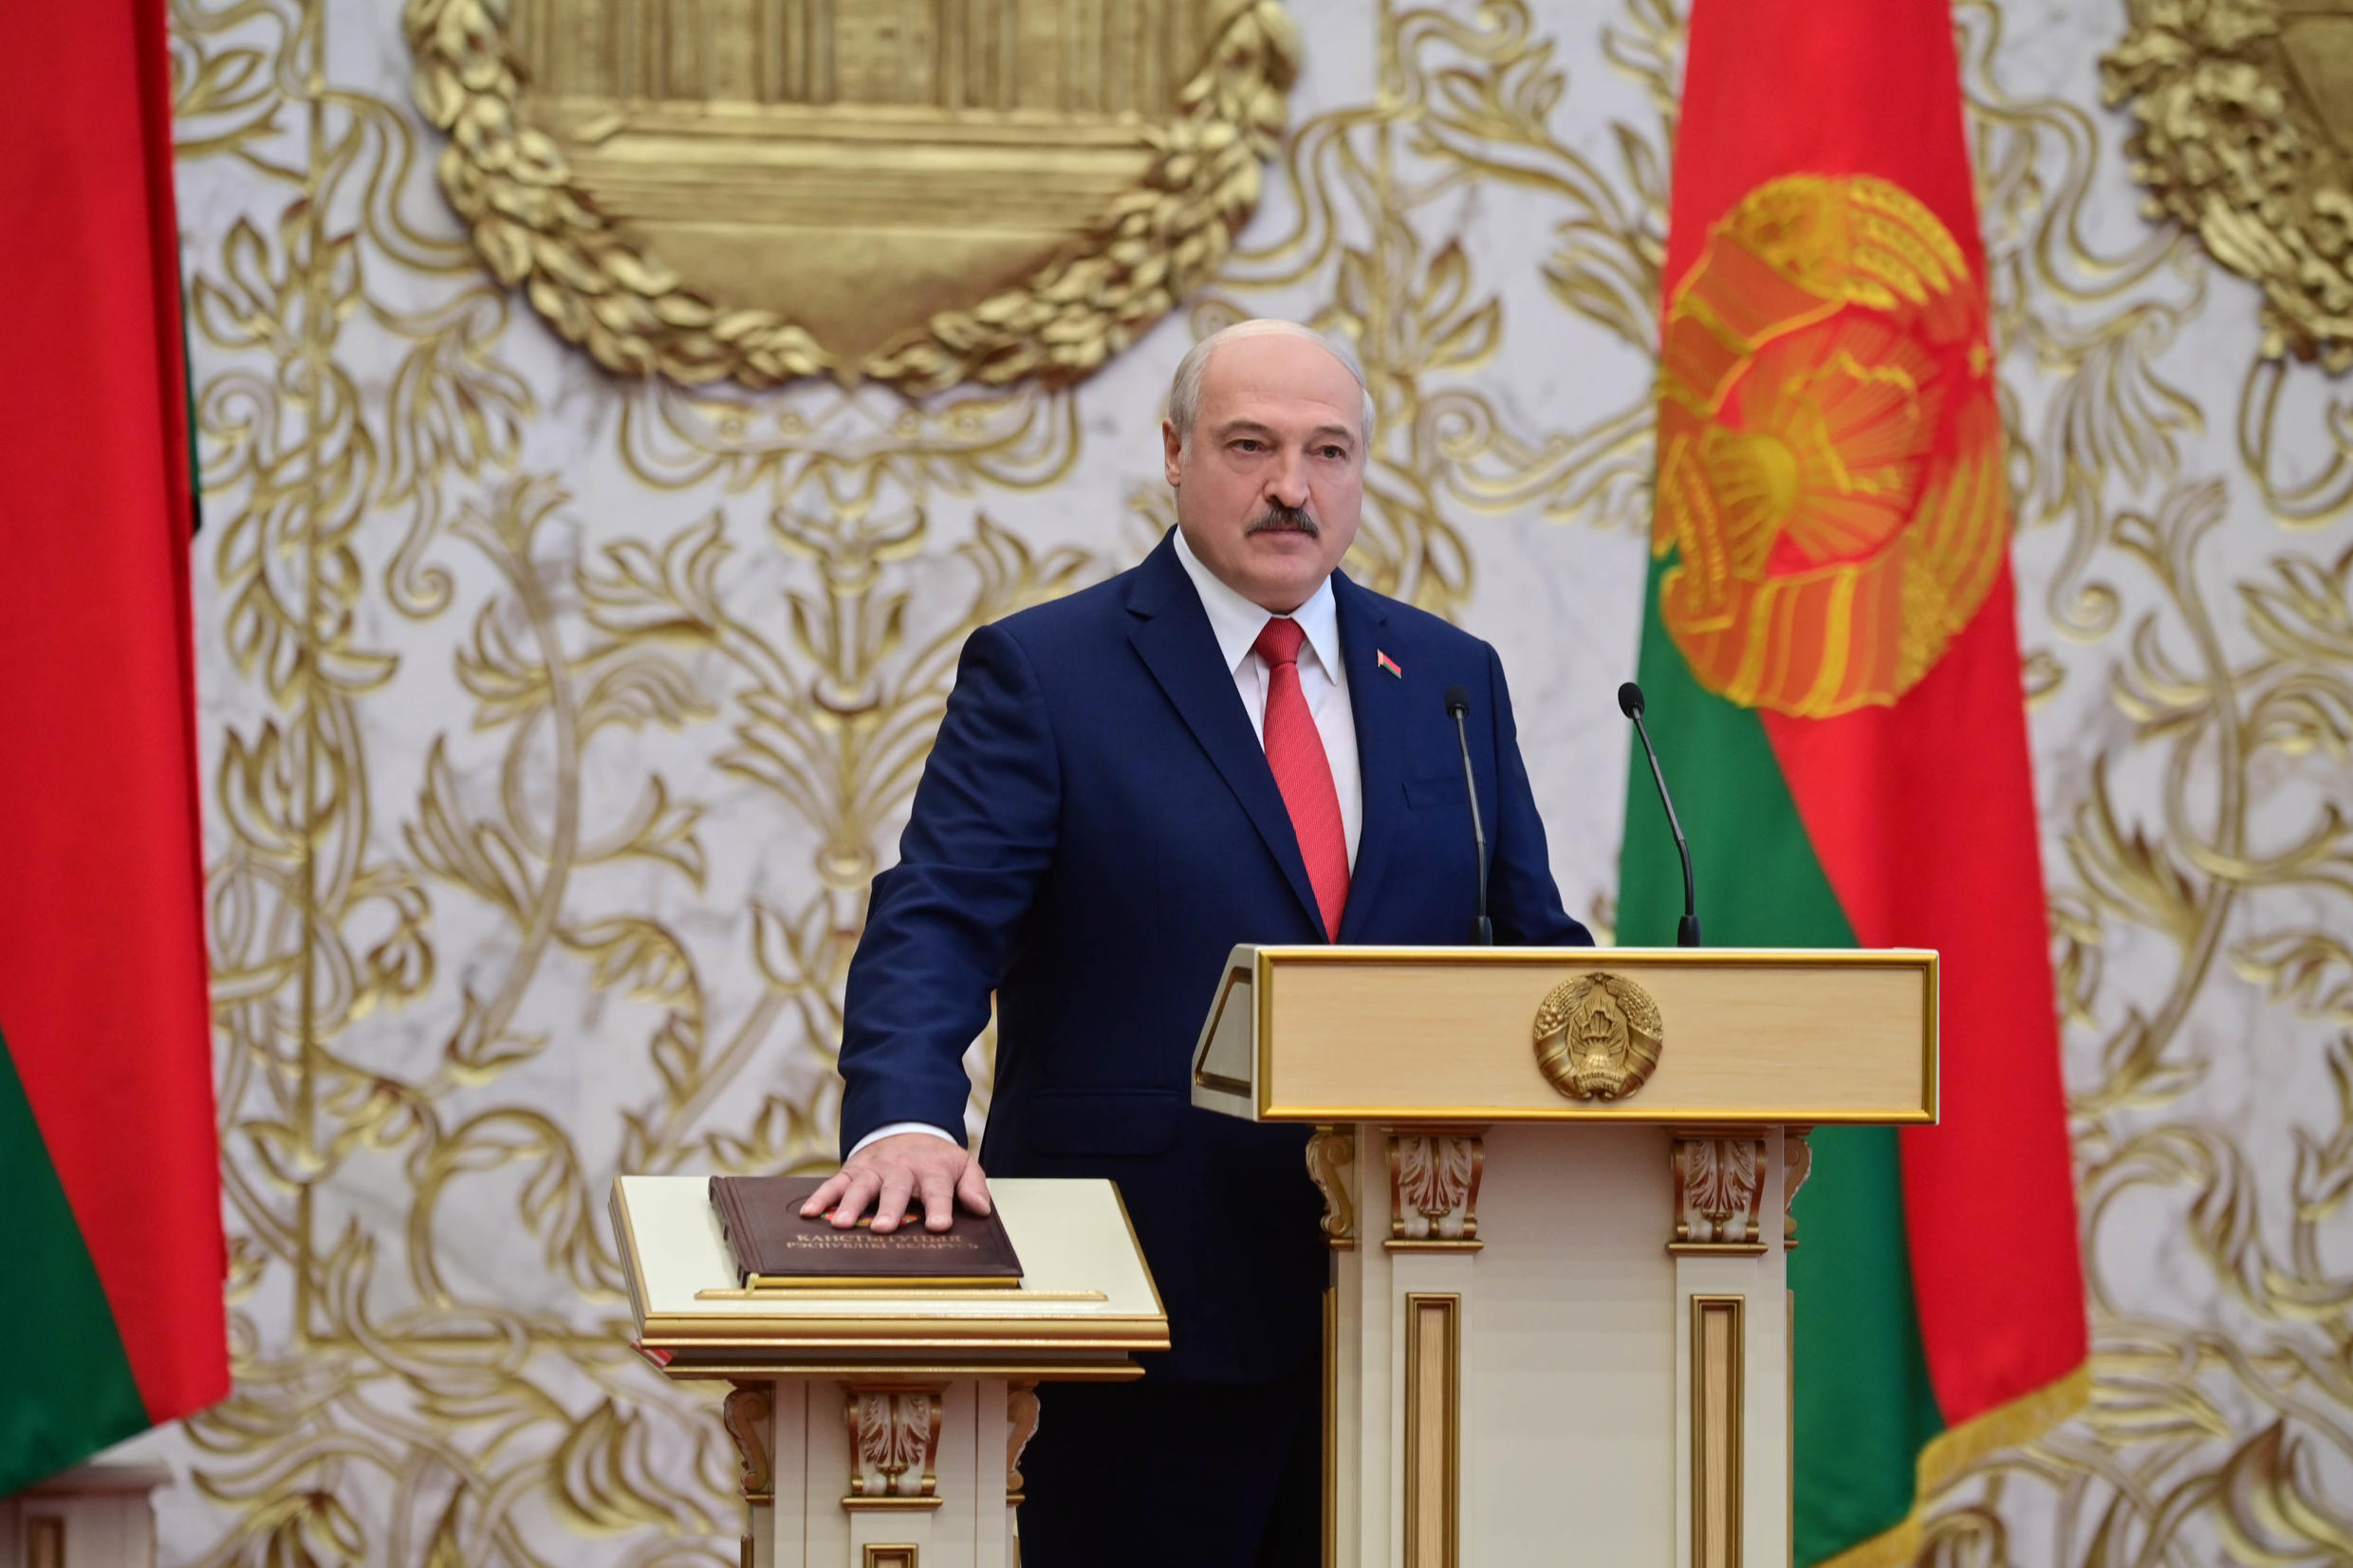 Olympic chiefs on Monday cracked down on the Belarus National Olympic Committee (NOC), headed by President Alexander Lukashenko, for discriminating against its athletes for their political views